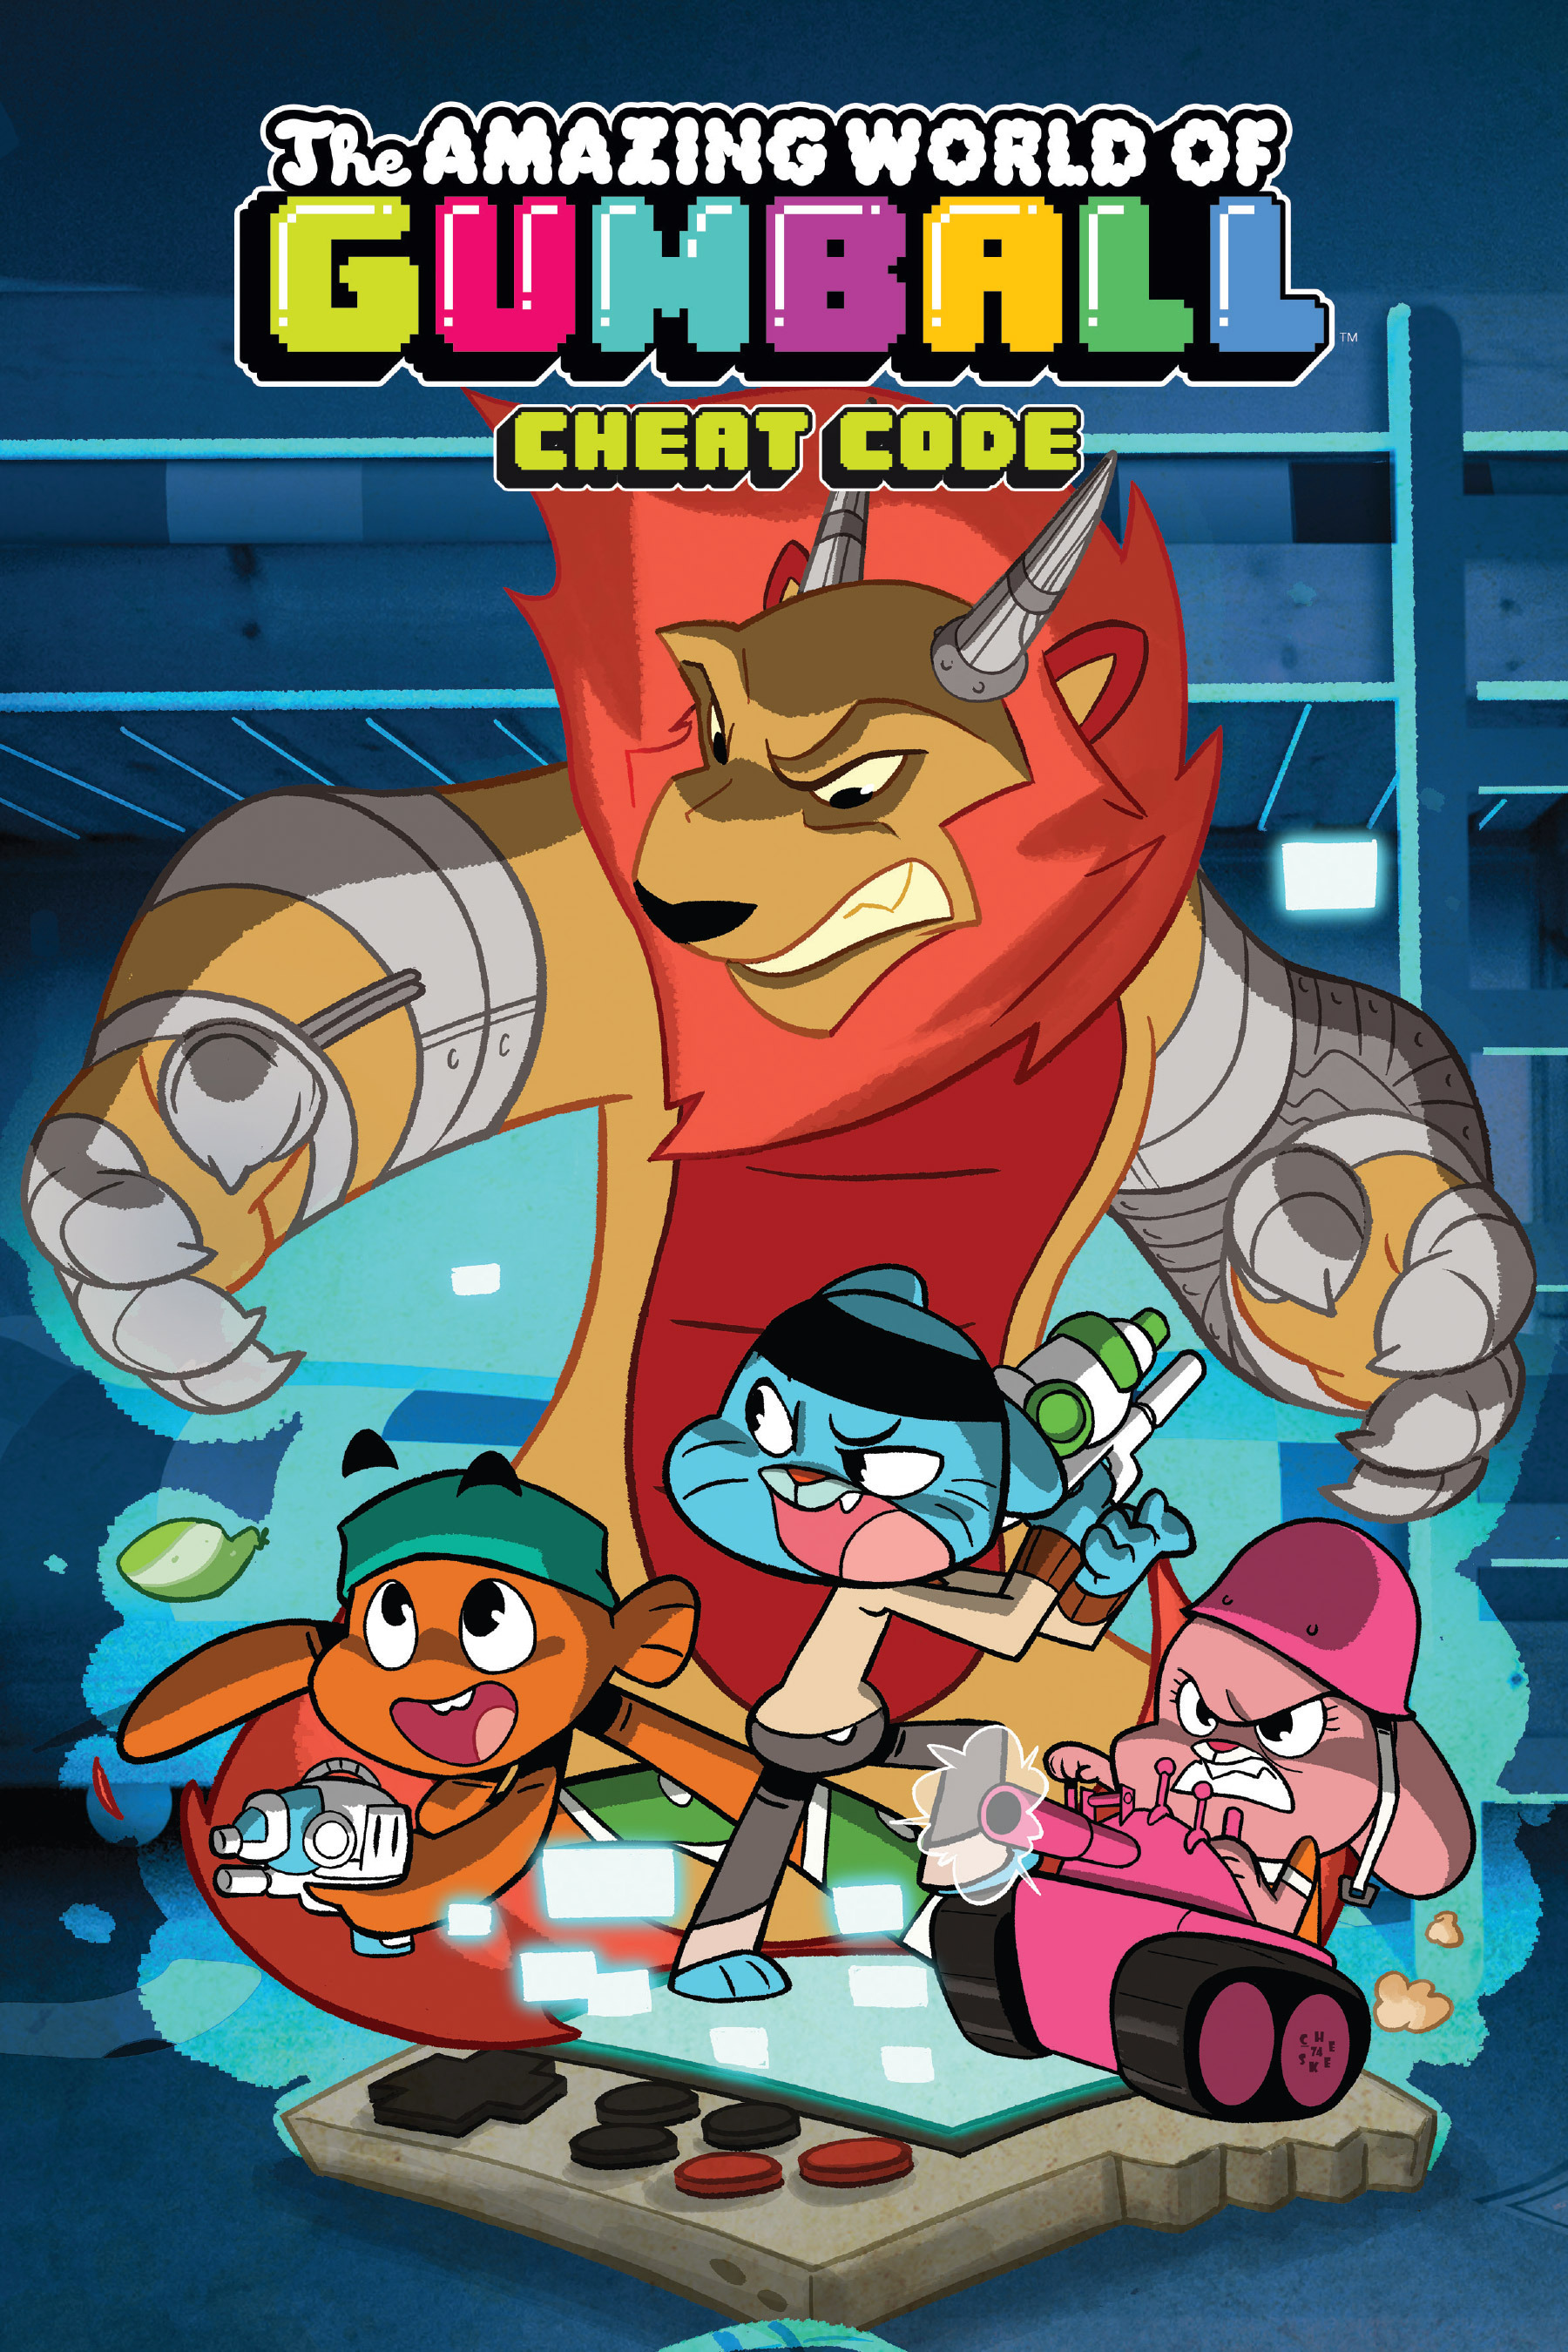 The Amazing World of Gumball Vol. 2: Cheat CodeFan Feed